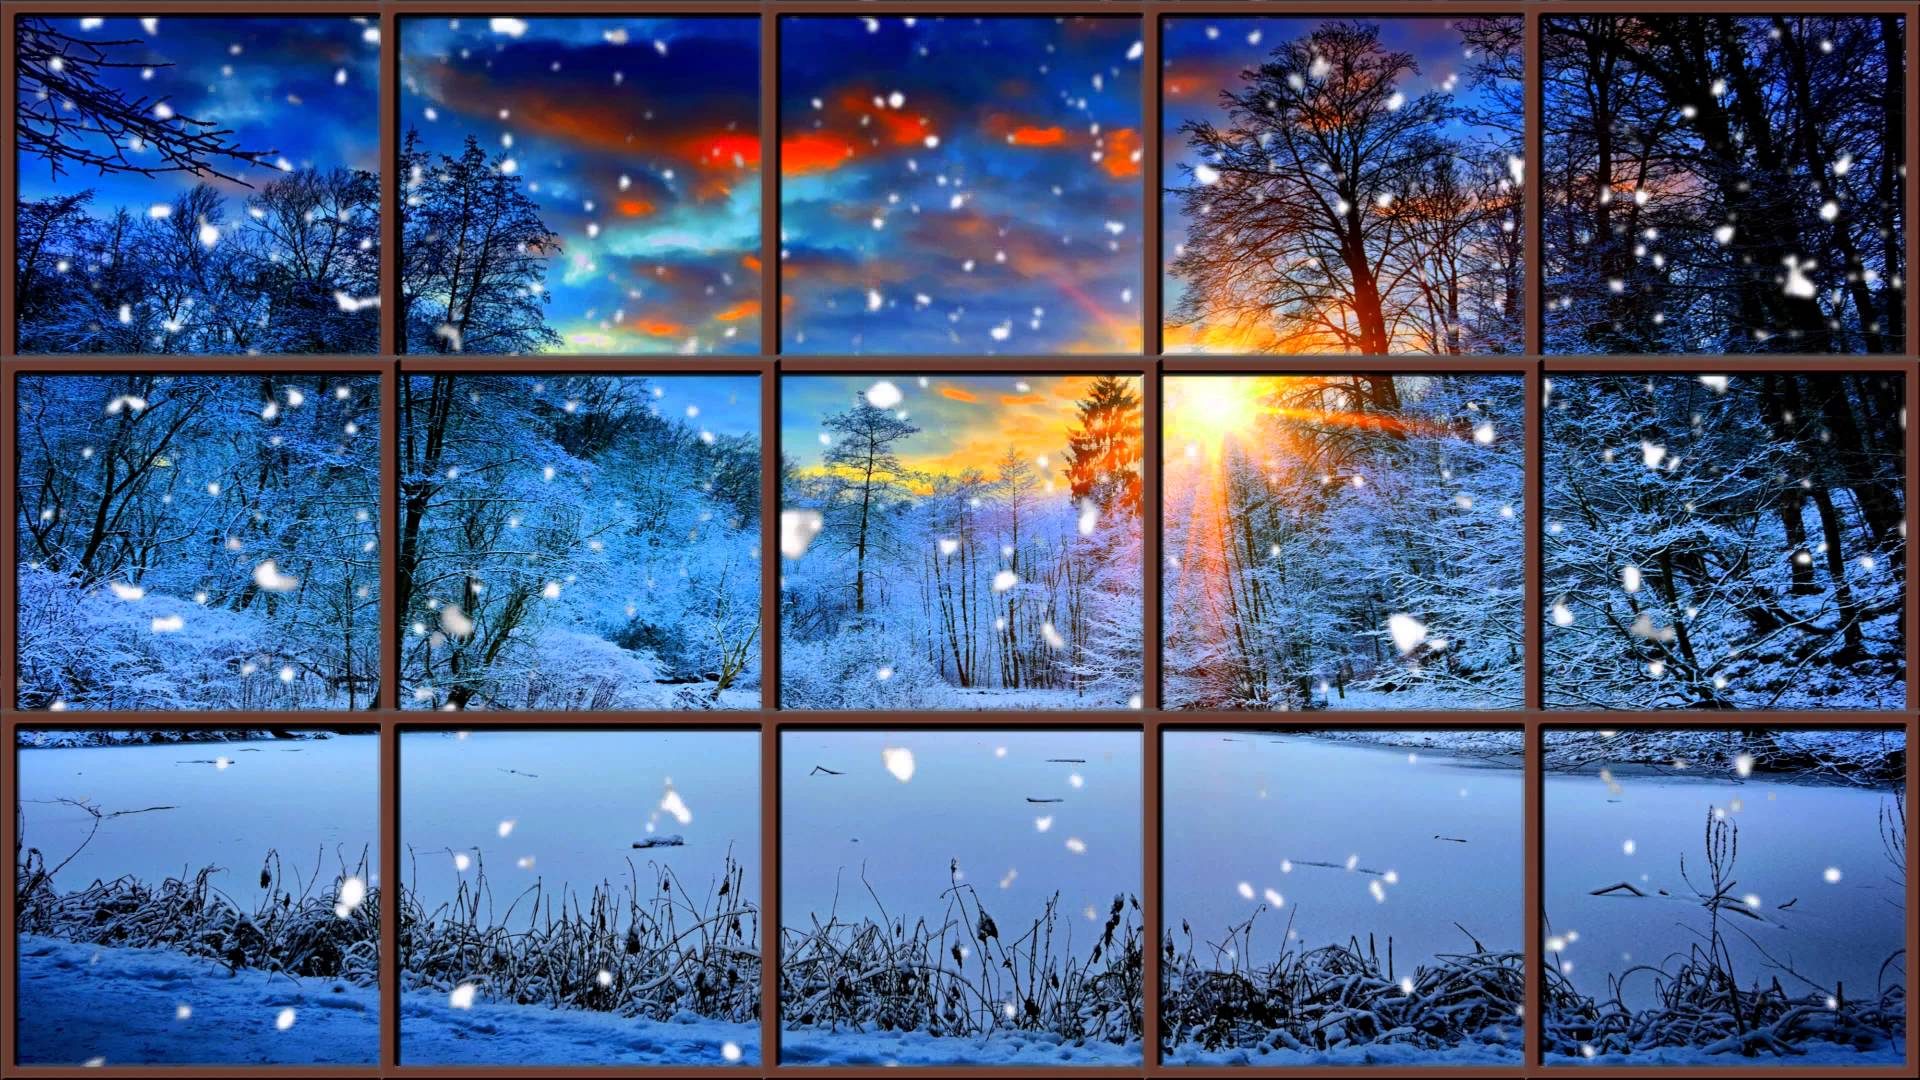 Snowfall Live Wallpaper For Iphone Winter View Hd Wallpaper Background Image 1920x1080